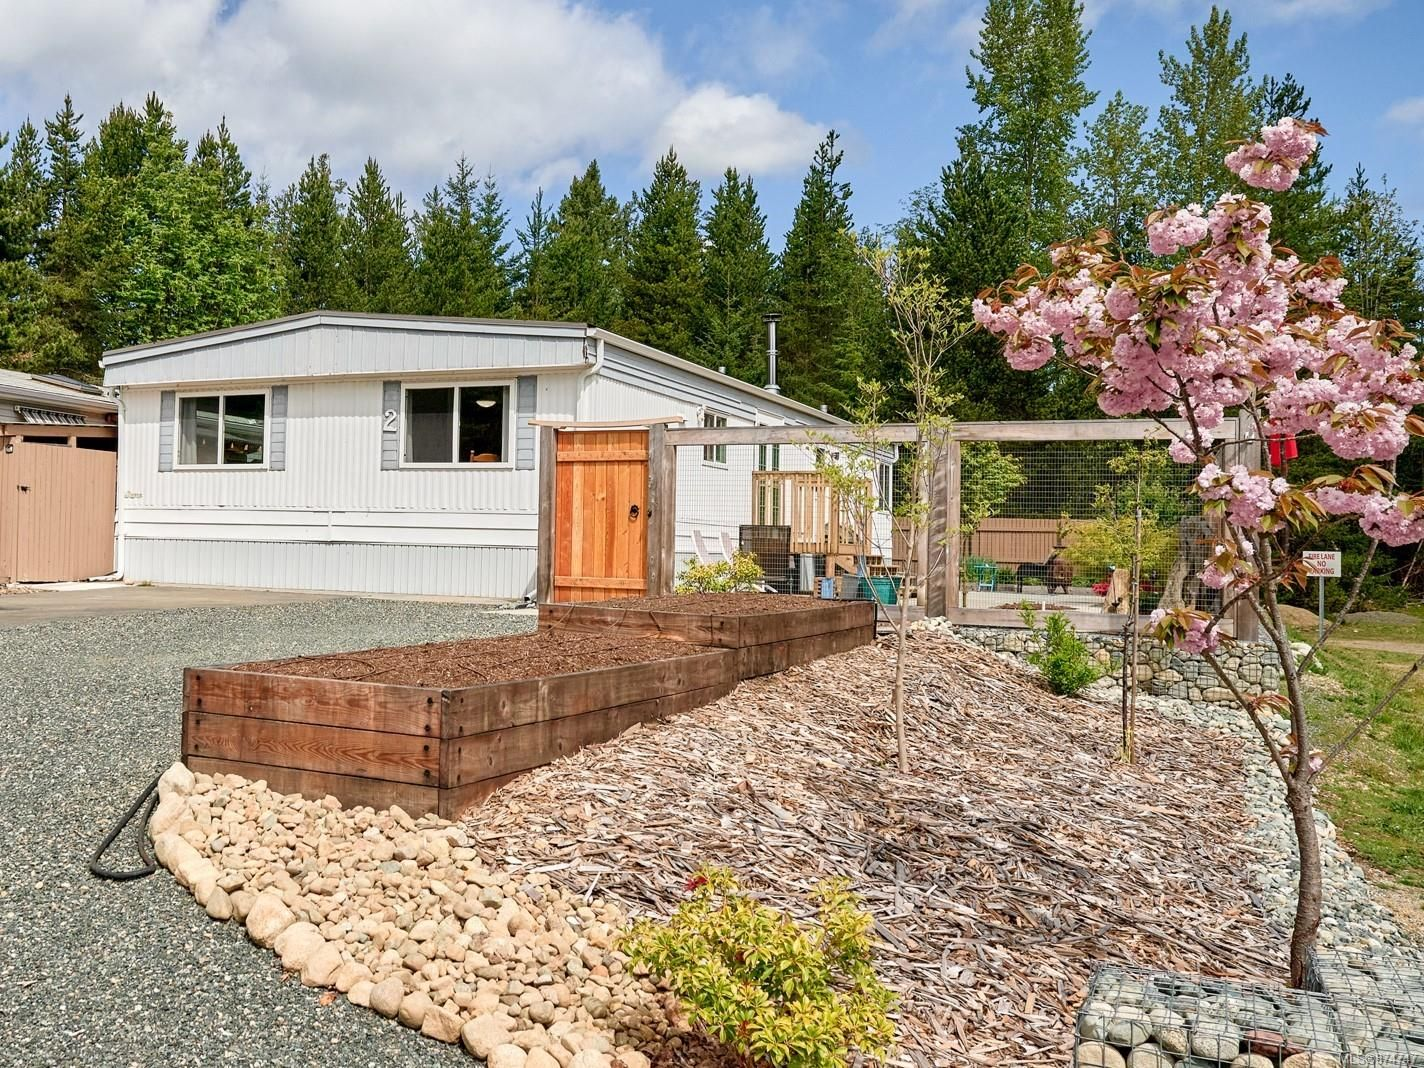 Main Photo: 2 2100 Errington Rd in : PQ Errington/Coombs/Hilliers House for sale (Parksville/Qualicum)  : MLS®# 874747